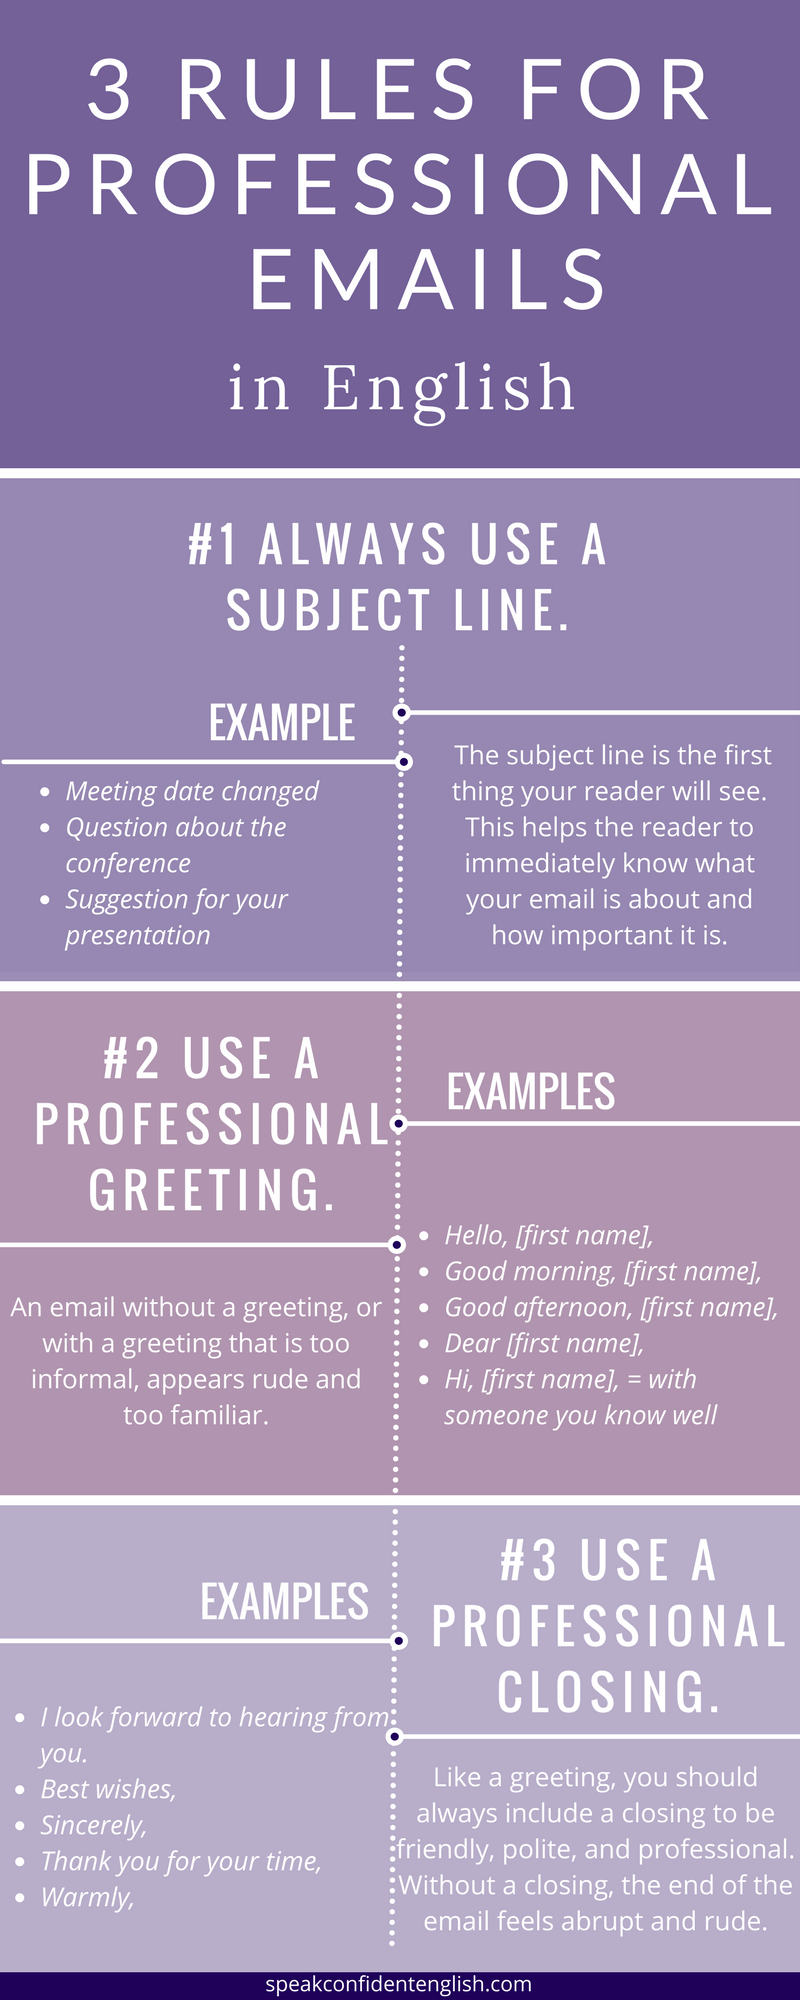 13 Rules for Professional Emails in English - Business English